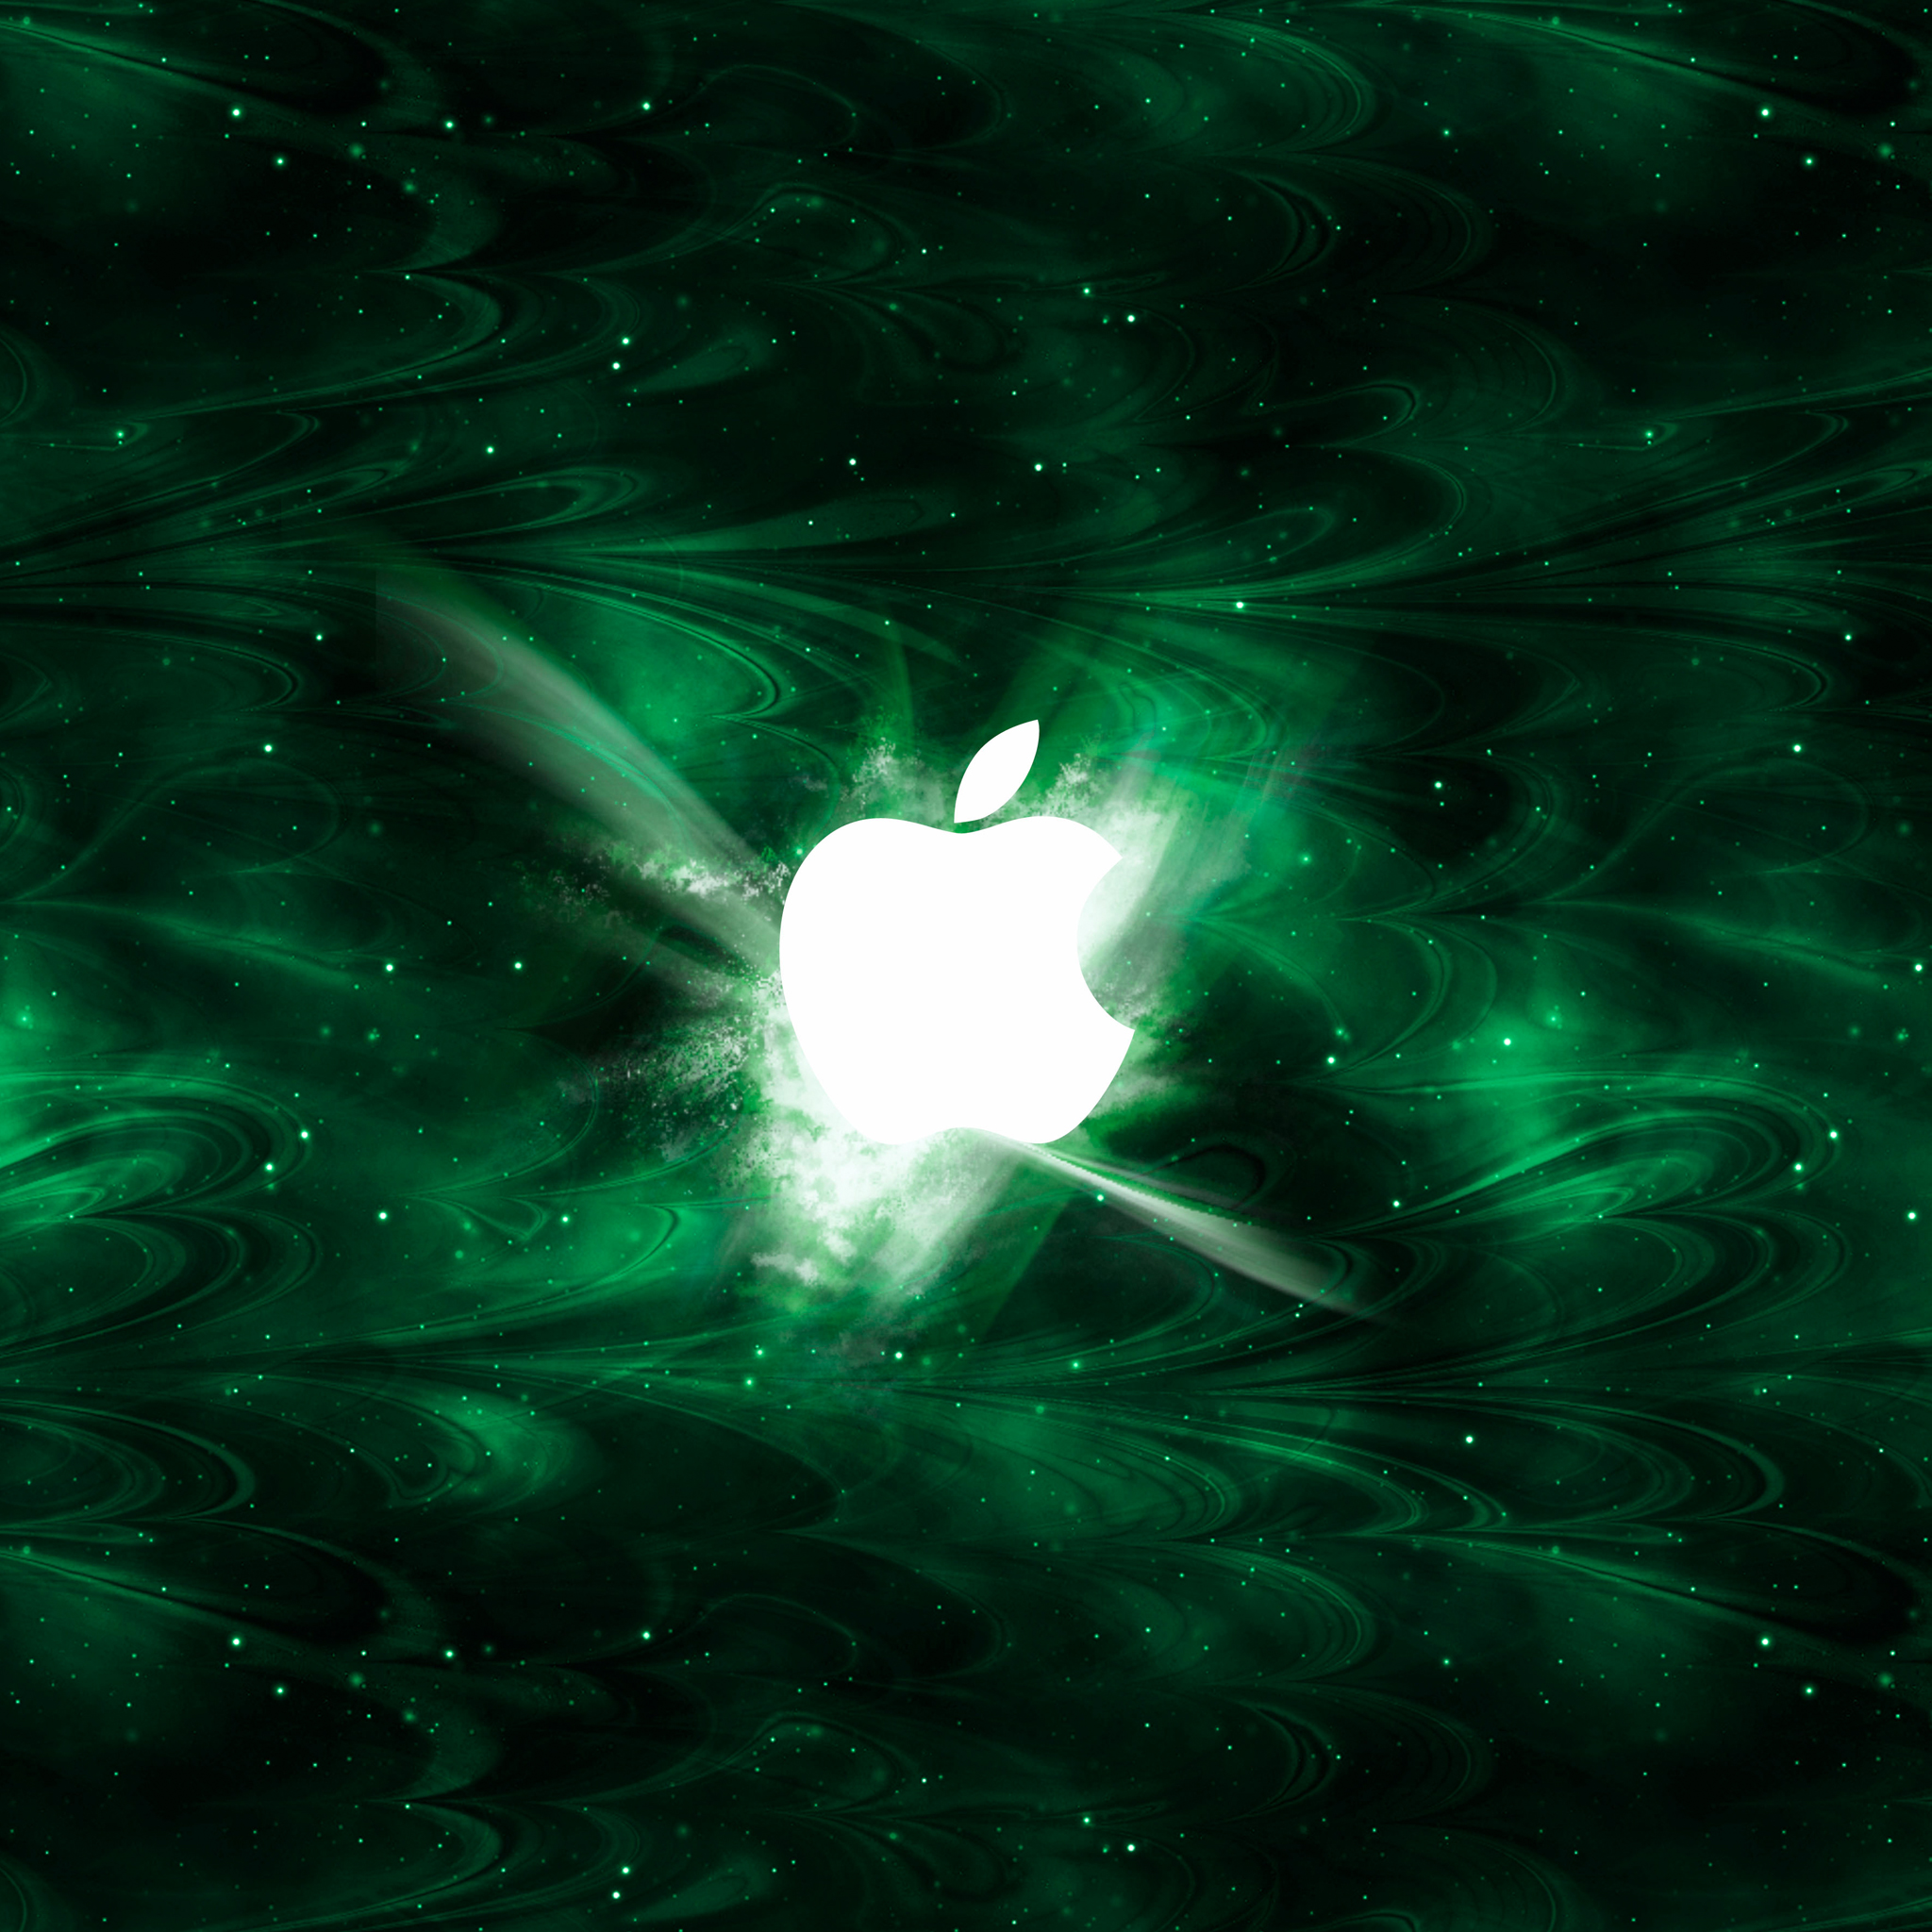 Green-Smoked-Apple-3Wallpapers-iPad